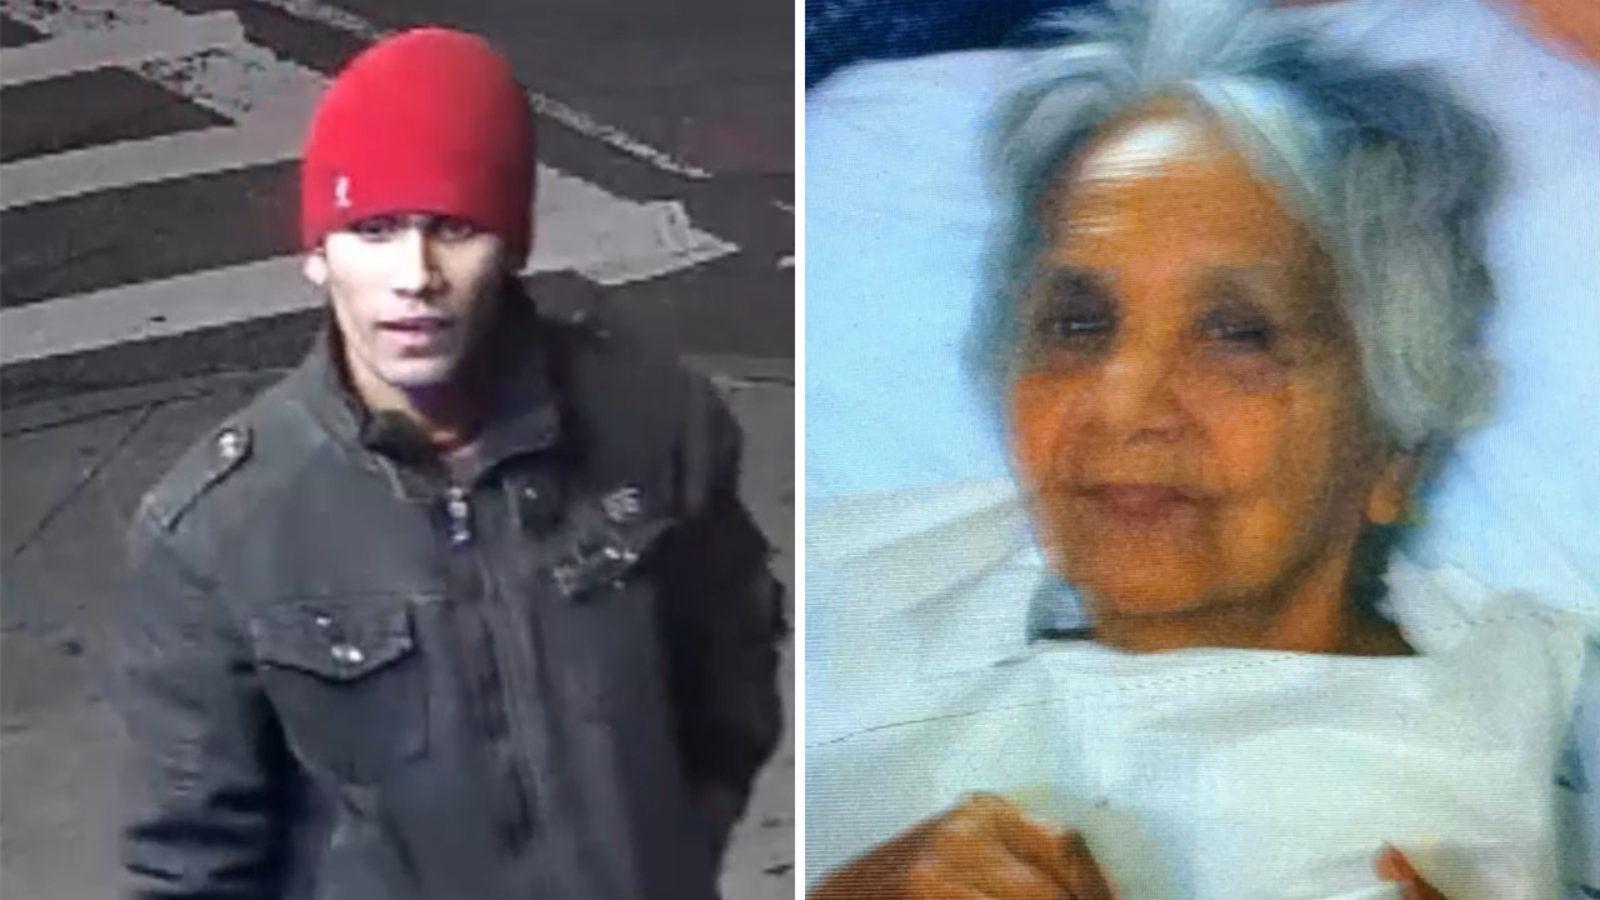 92-year-old woman beaten to death on New York City street; surveillance video shows suspect sought